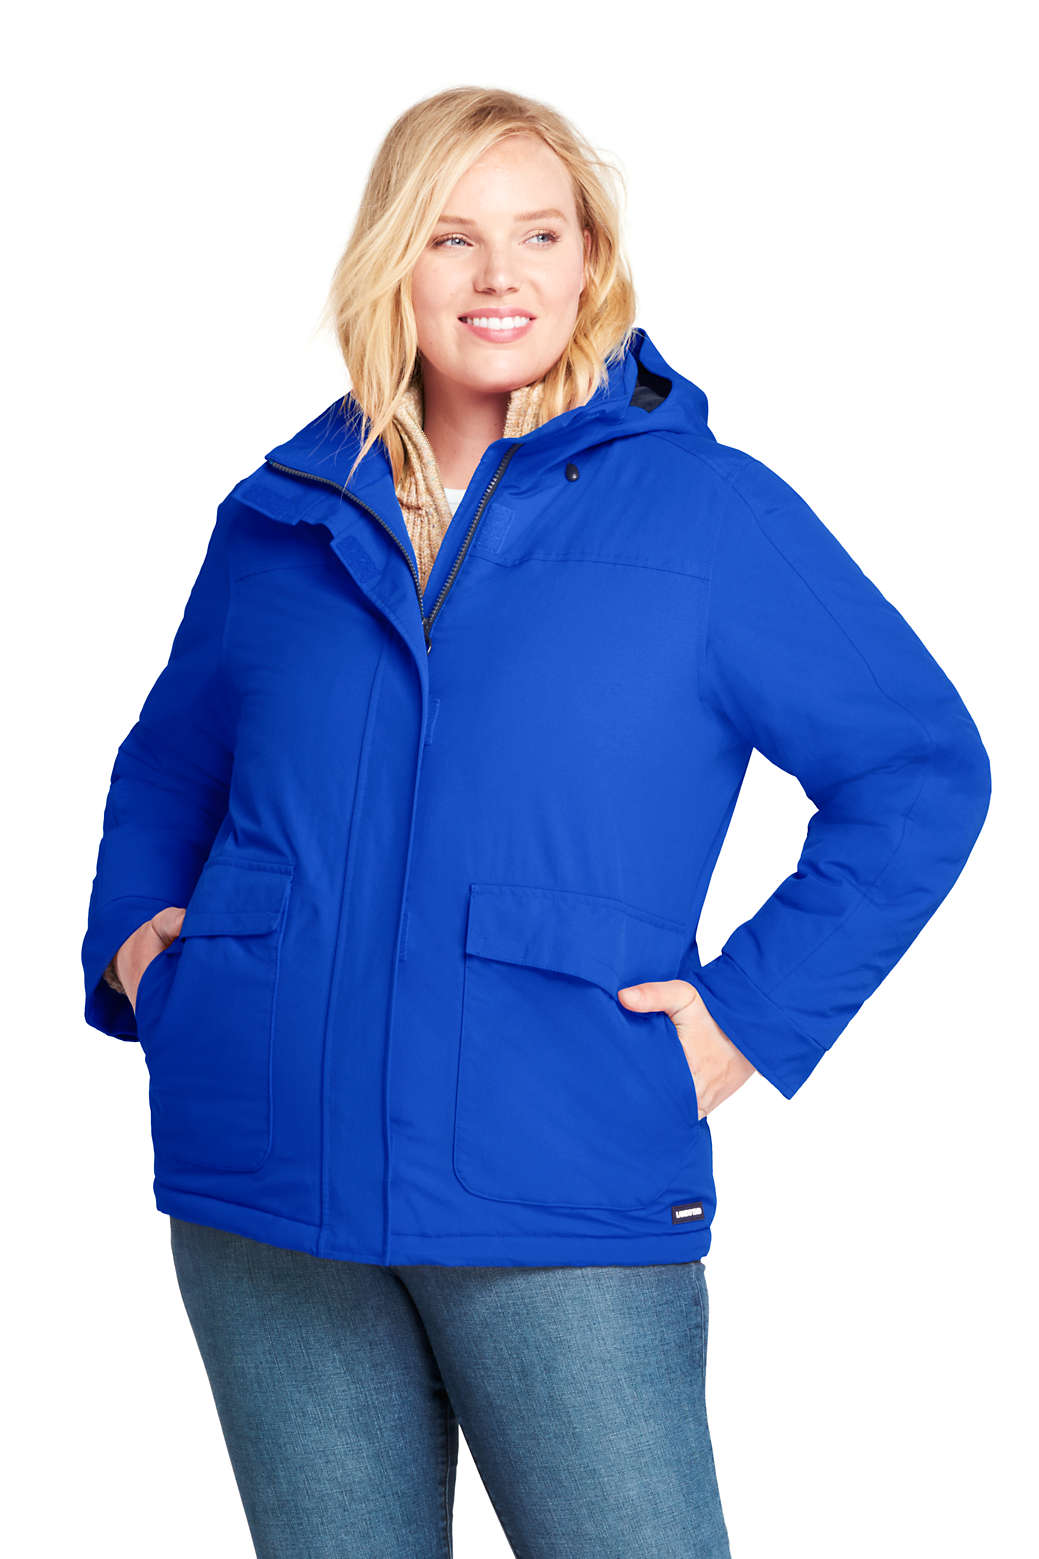 cbf0062c32 Women s Plus Size Hooded Squall Winter Jacket from Lands  End